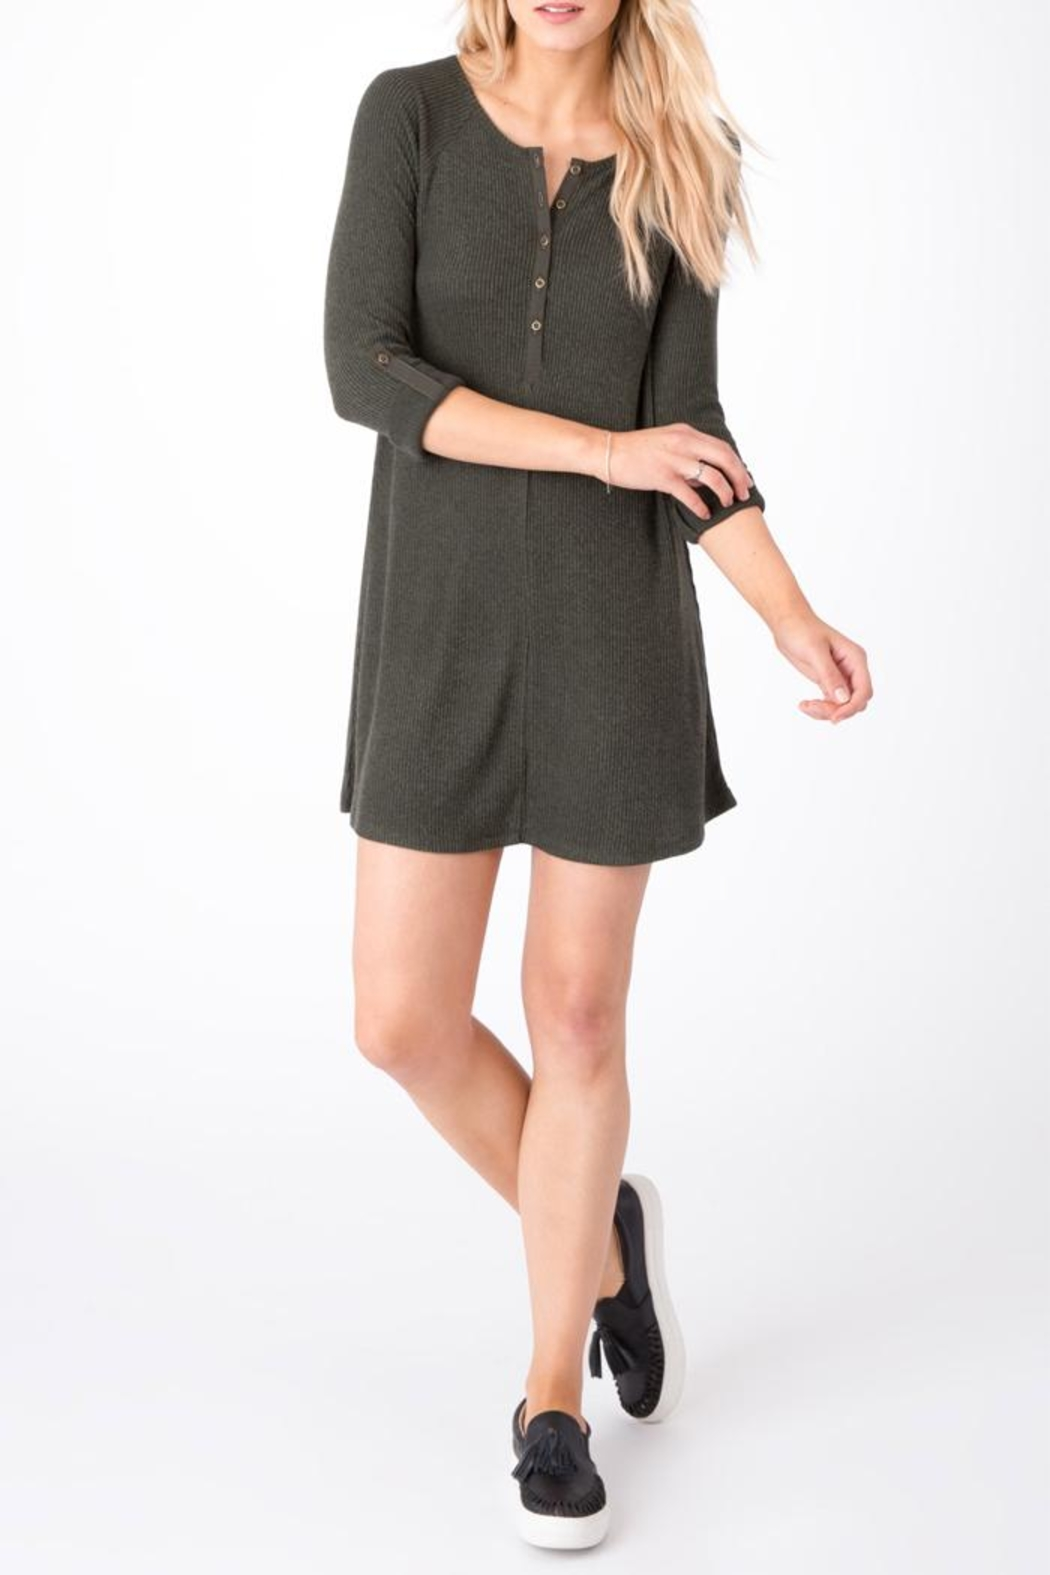 z supply Ribbed Shirt Dress - Back Cropped Image